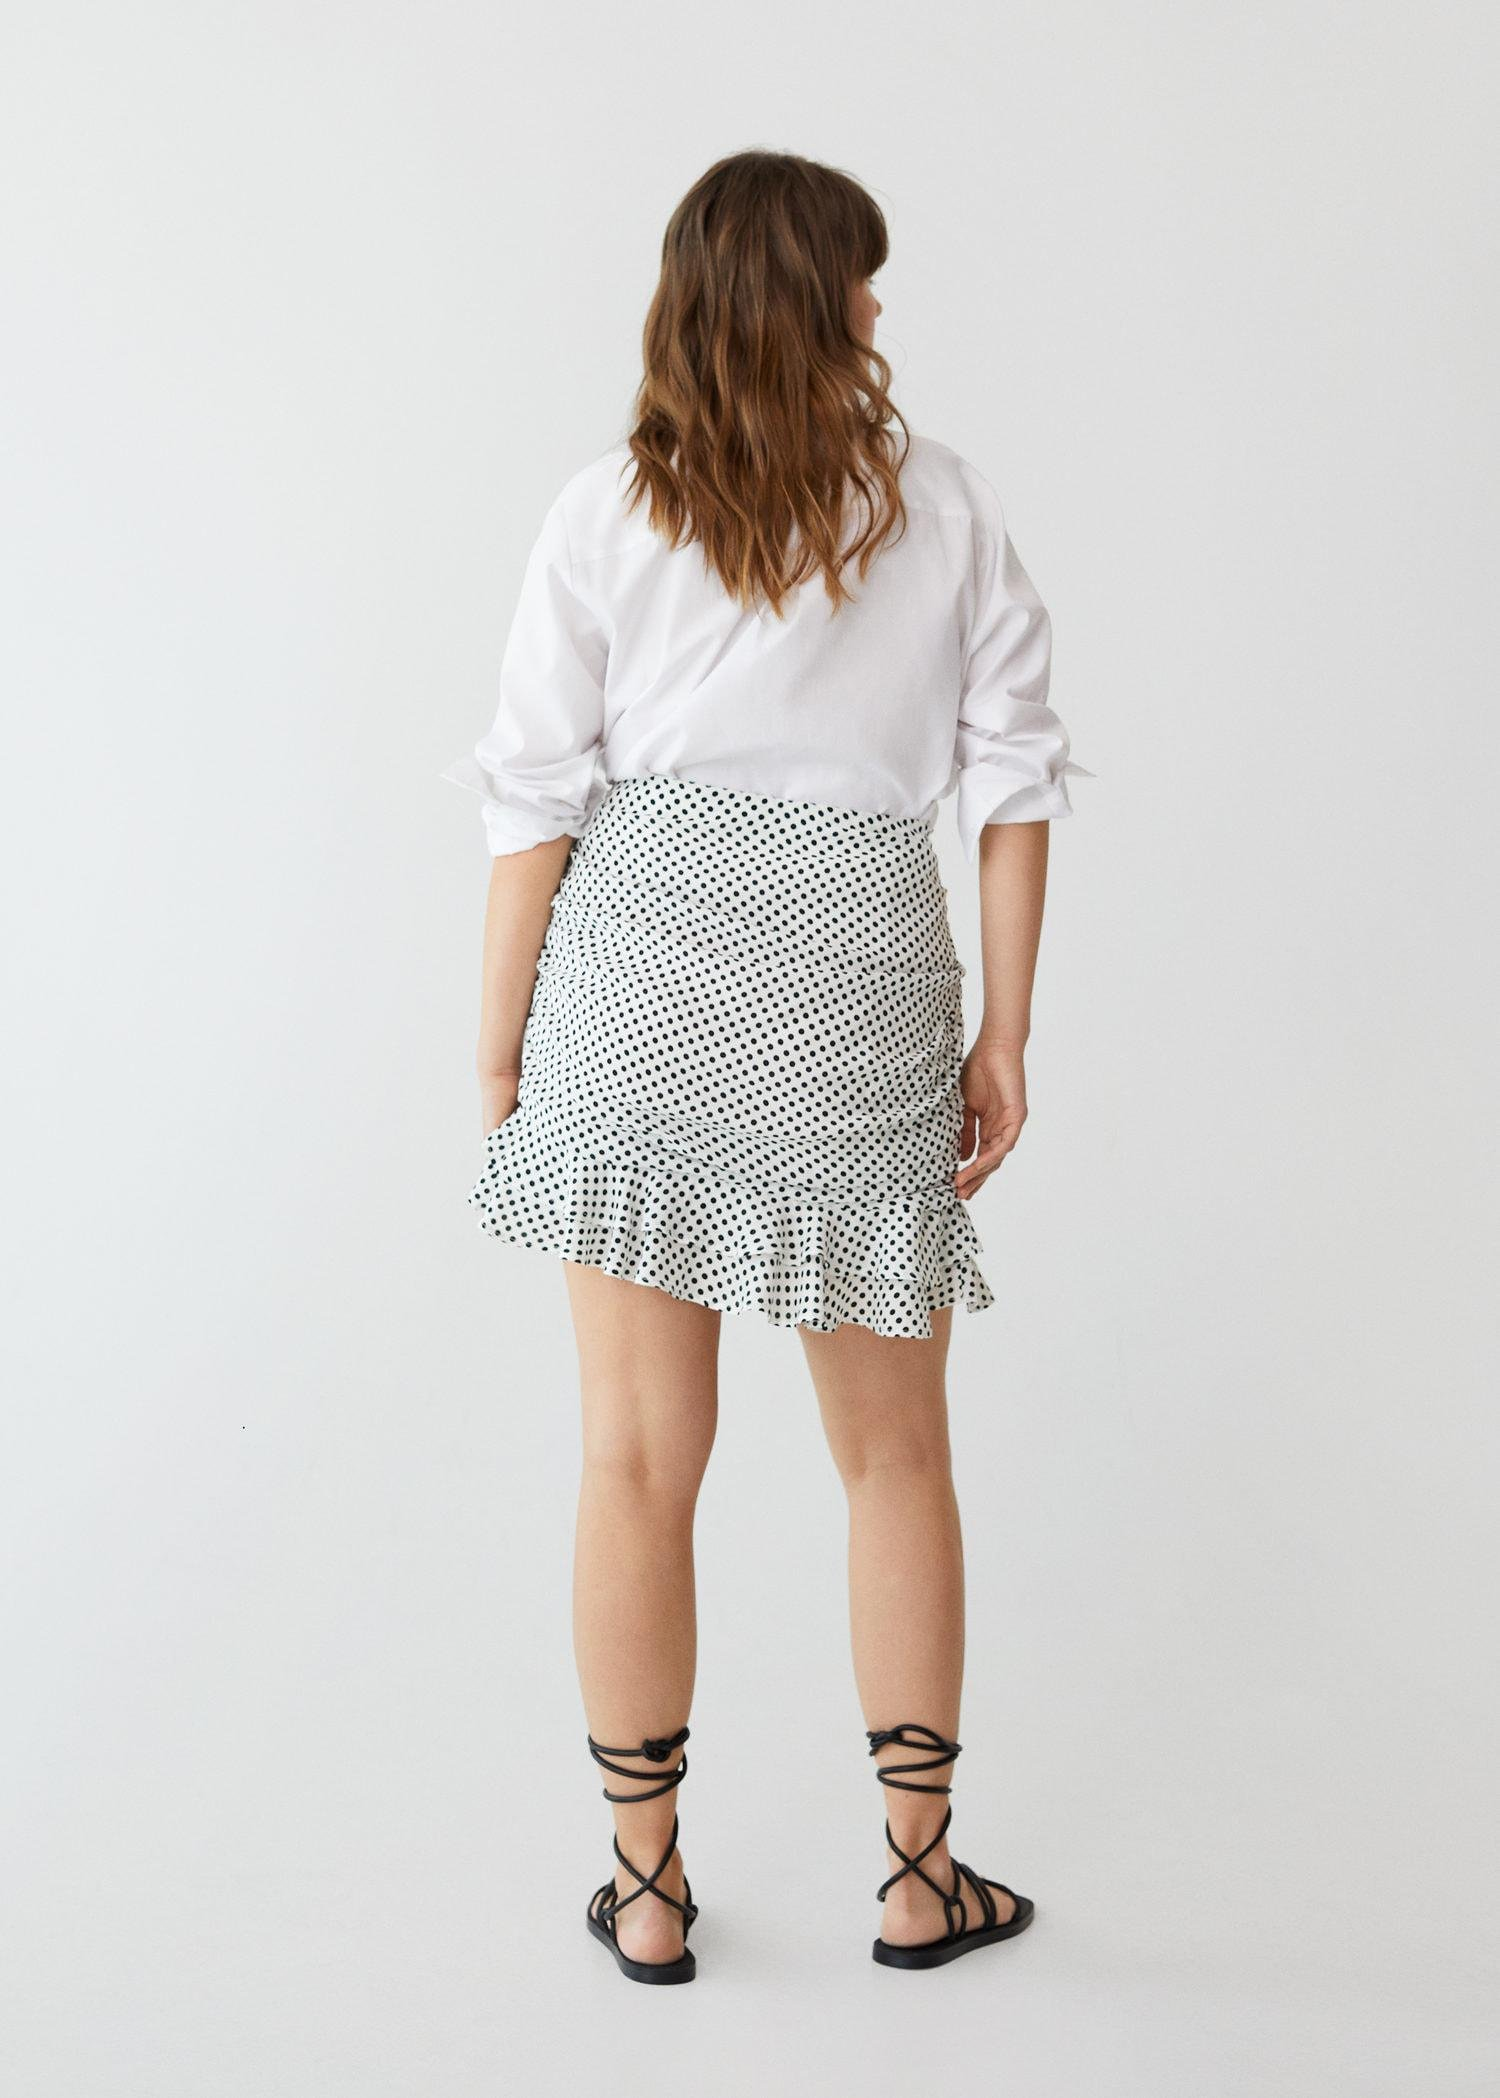 Gathered skirt with ruffles 2